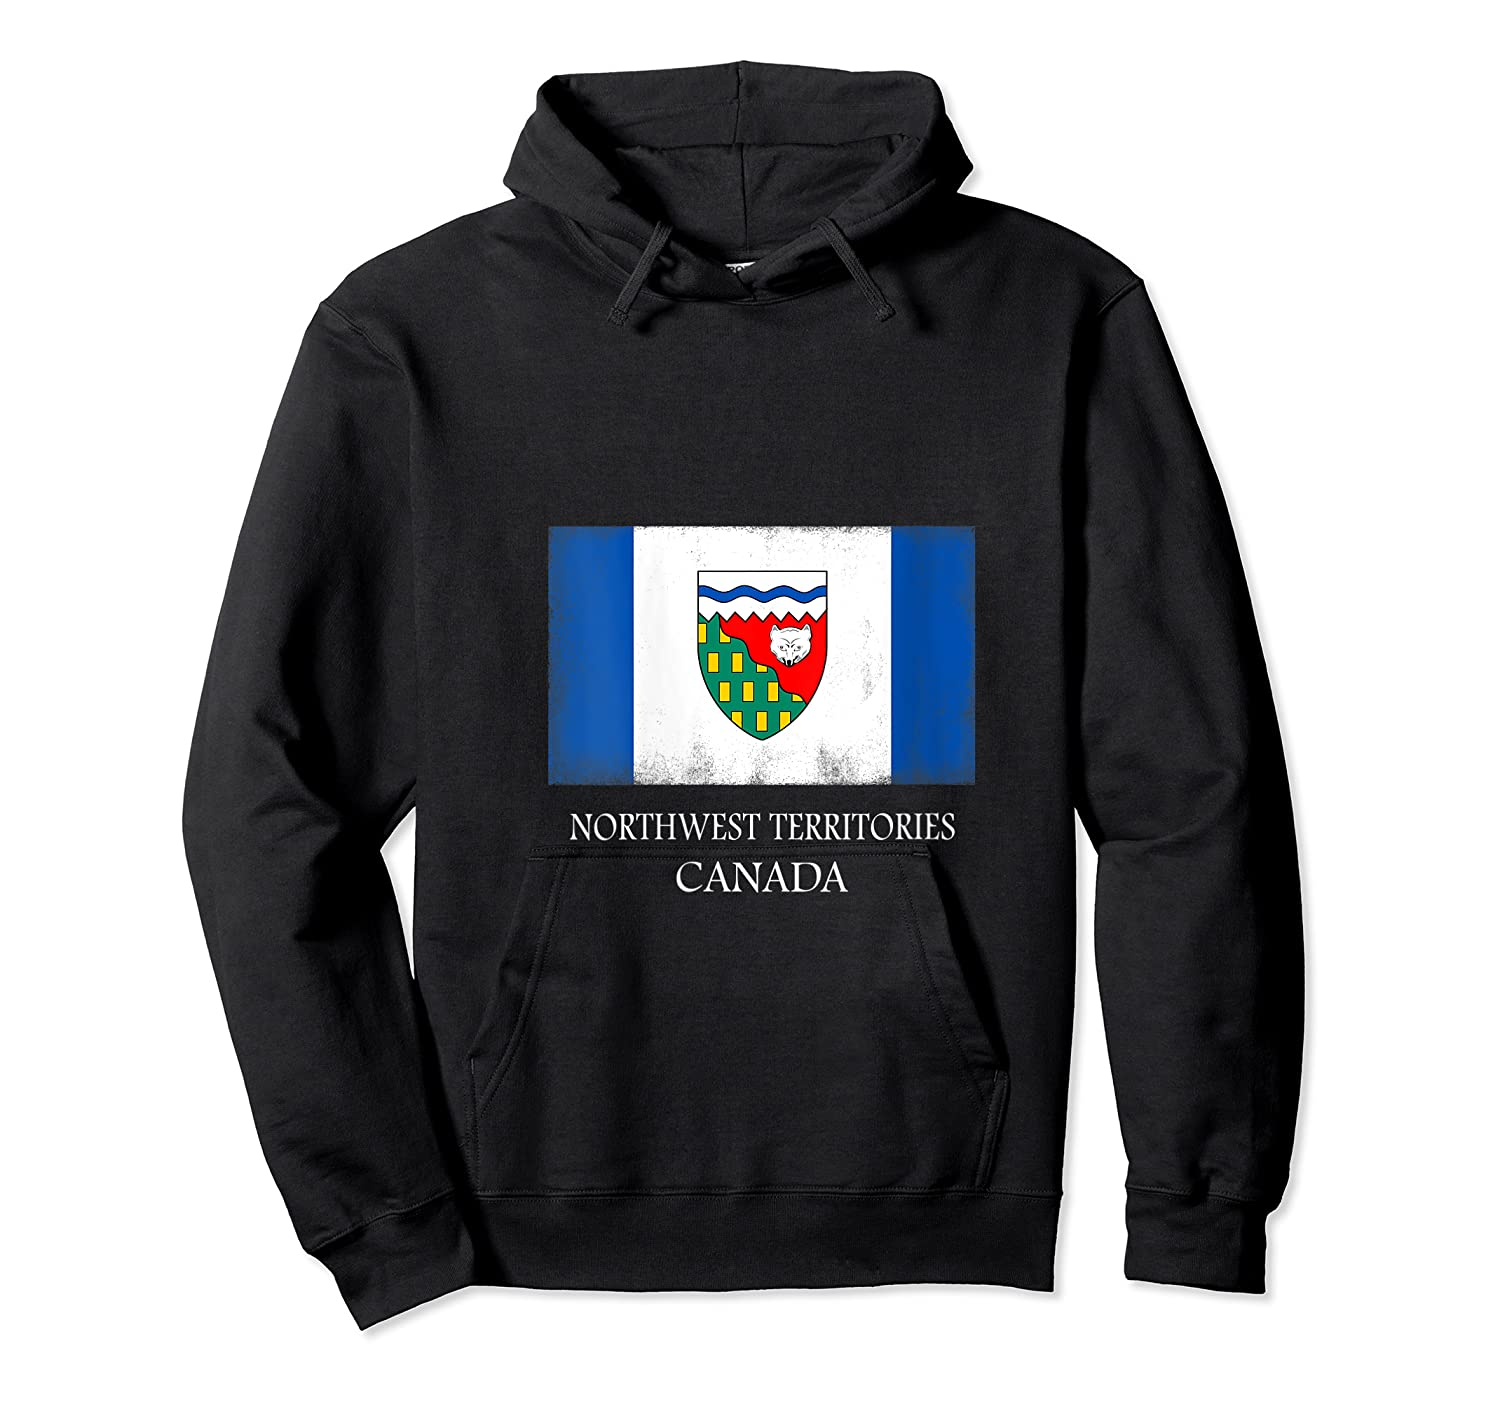 Northwest Territories Canada Province Canadian Flag Shirts Unisex Pullover Hoodie